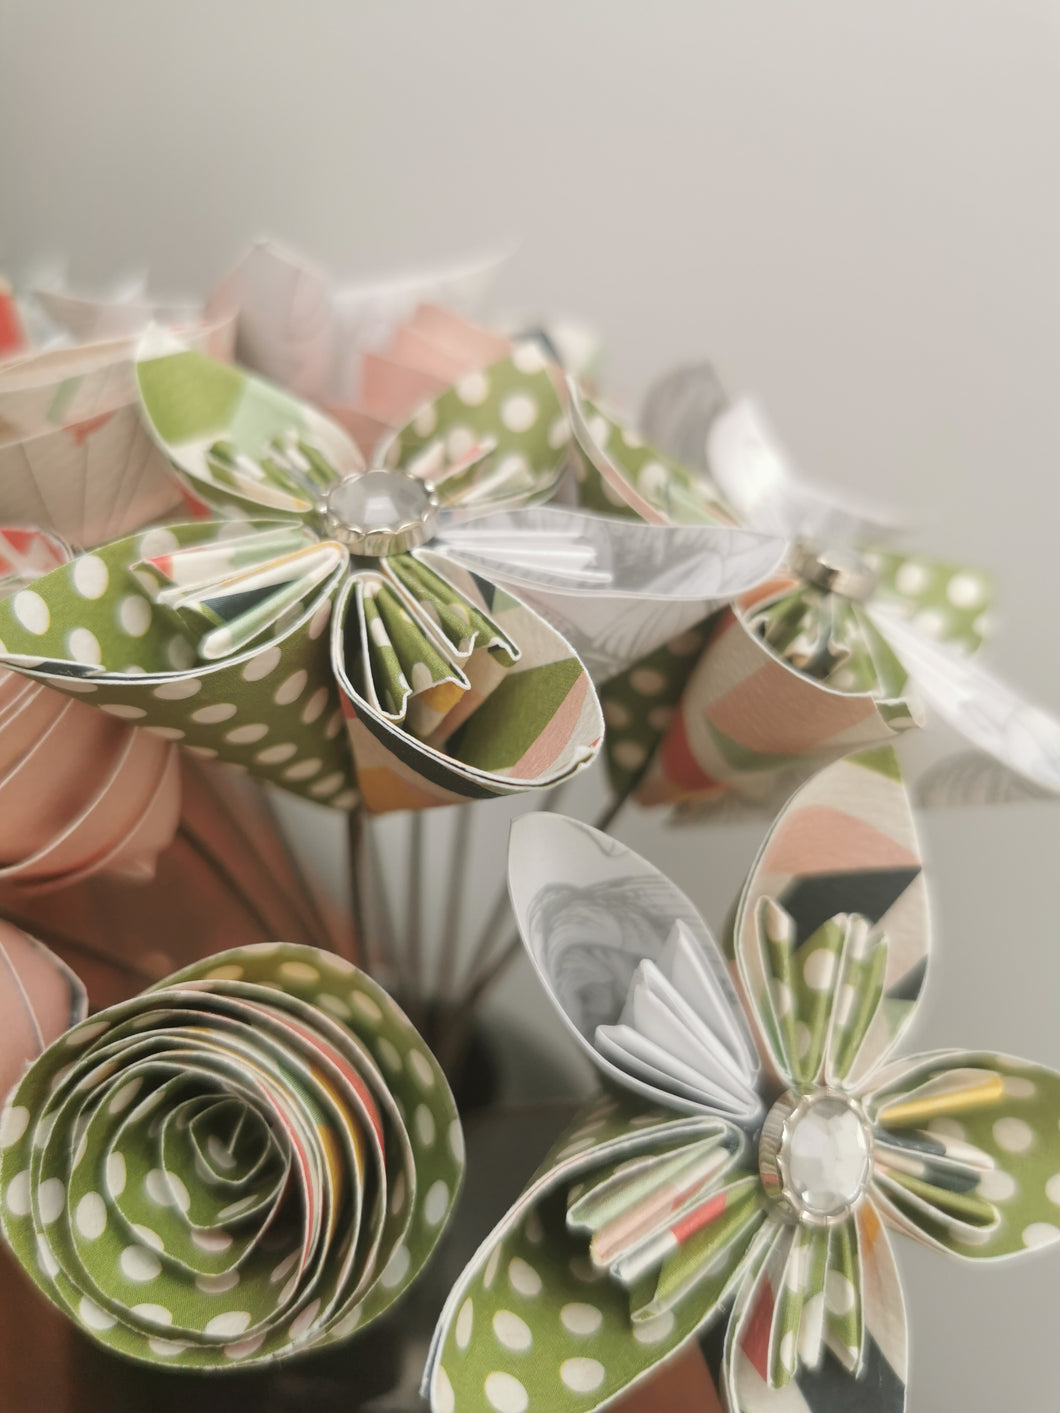 Origami Paper Flowers - Soft pink, white & green mix (bunch of 13)